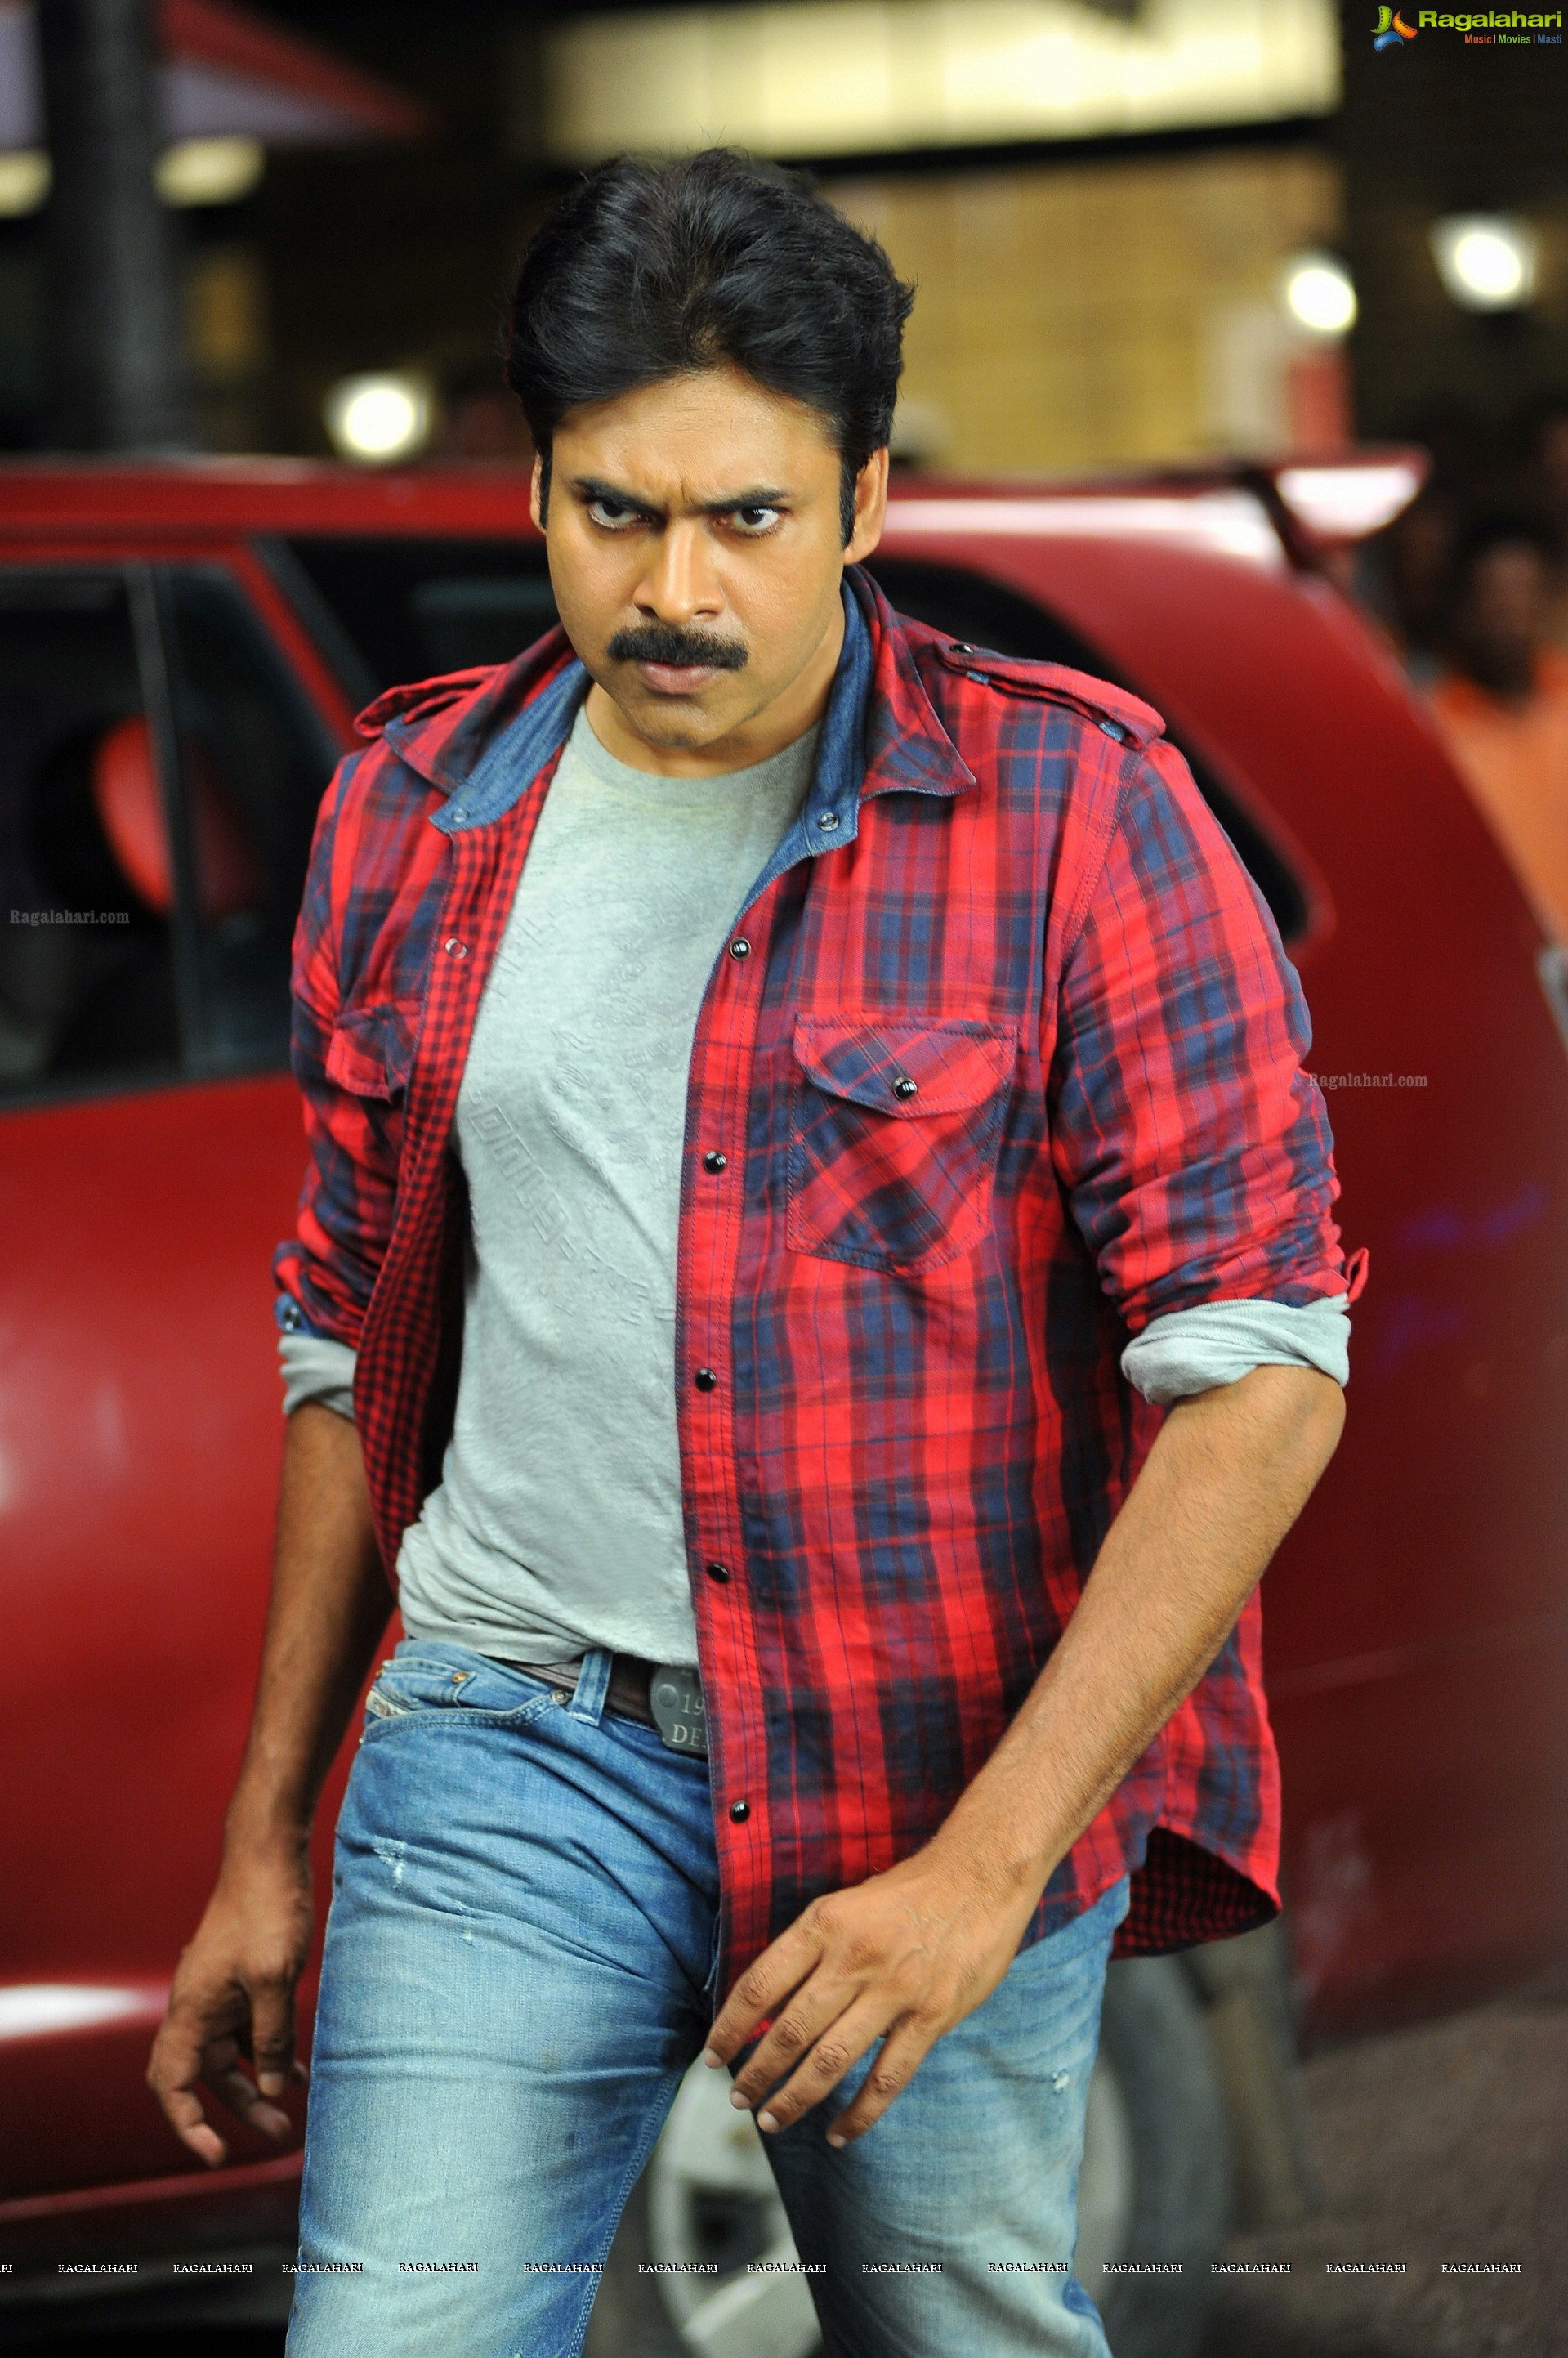 pawan kalyan (hd) image 2 | telugu actor photos,images, photos